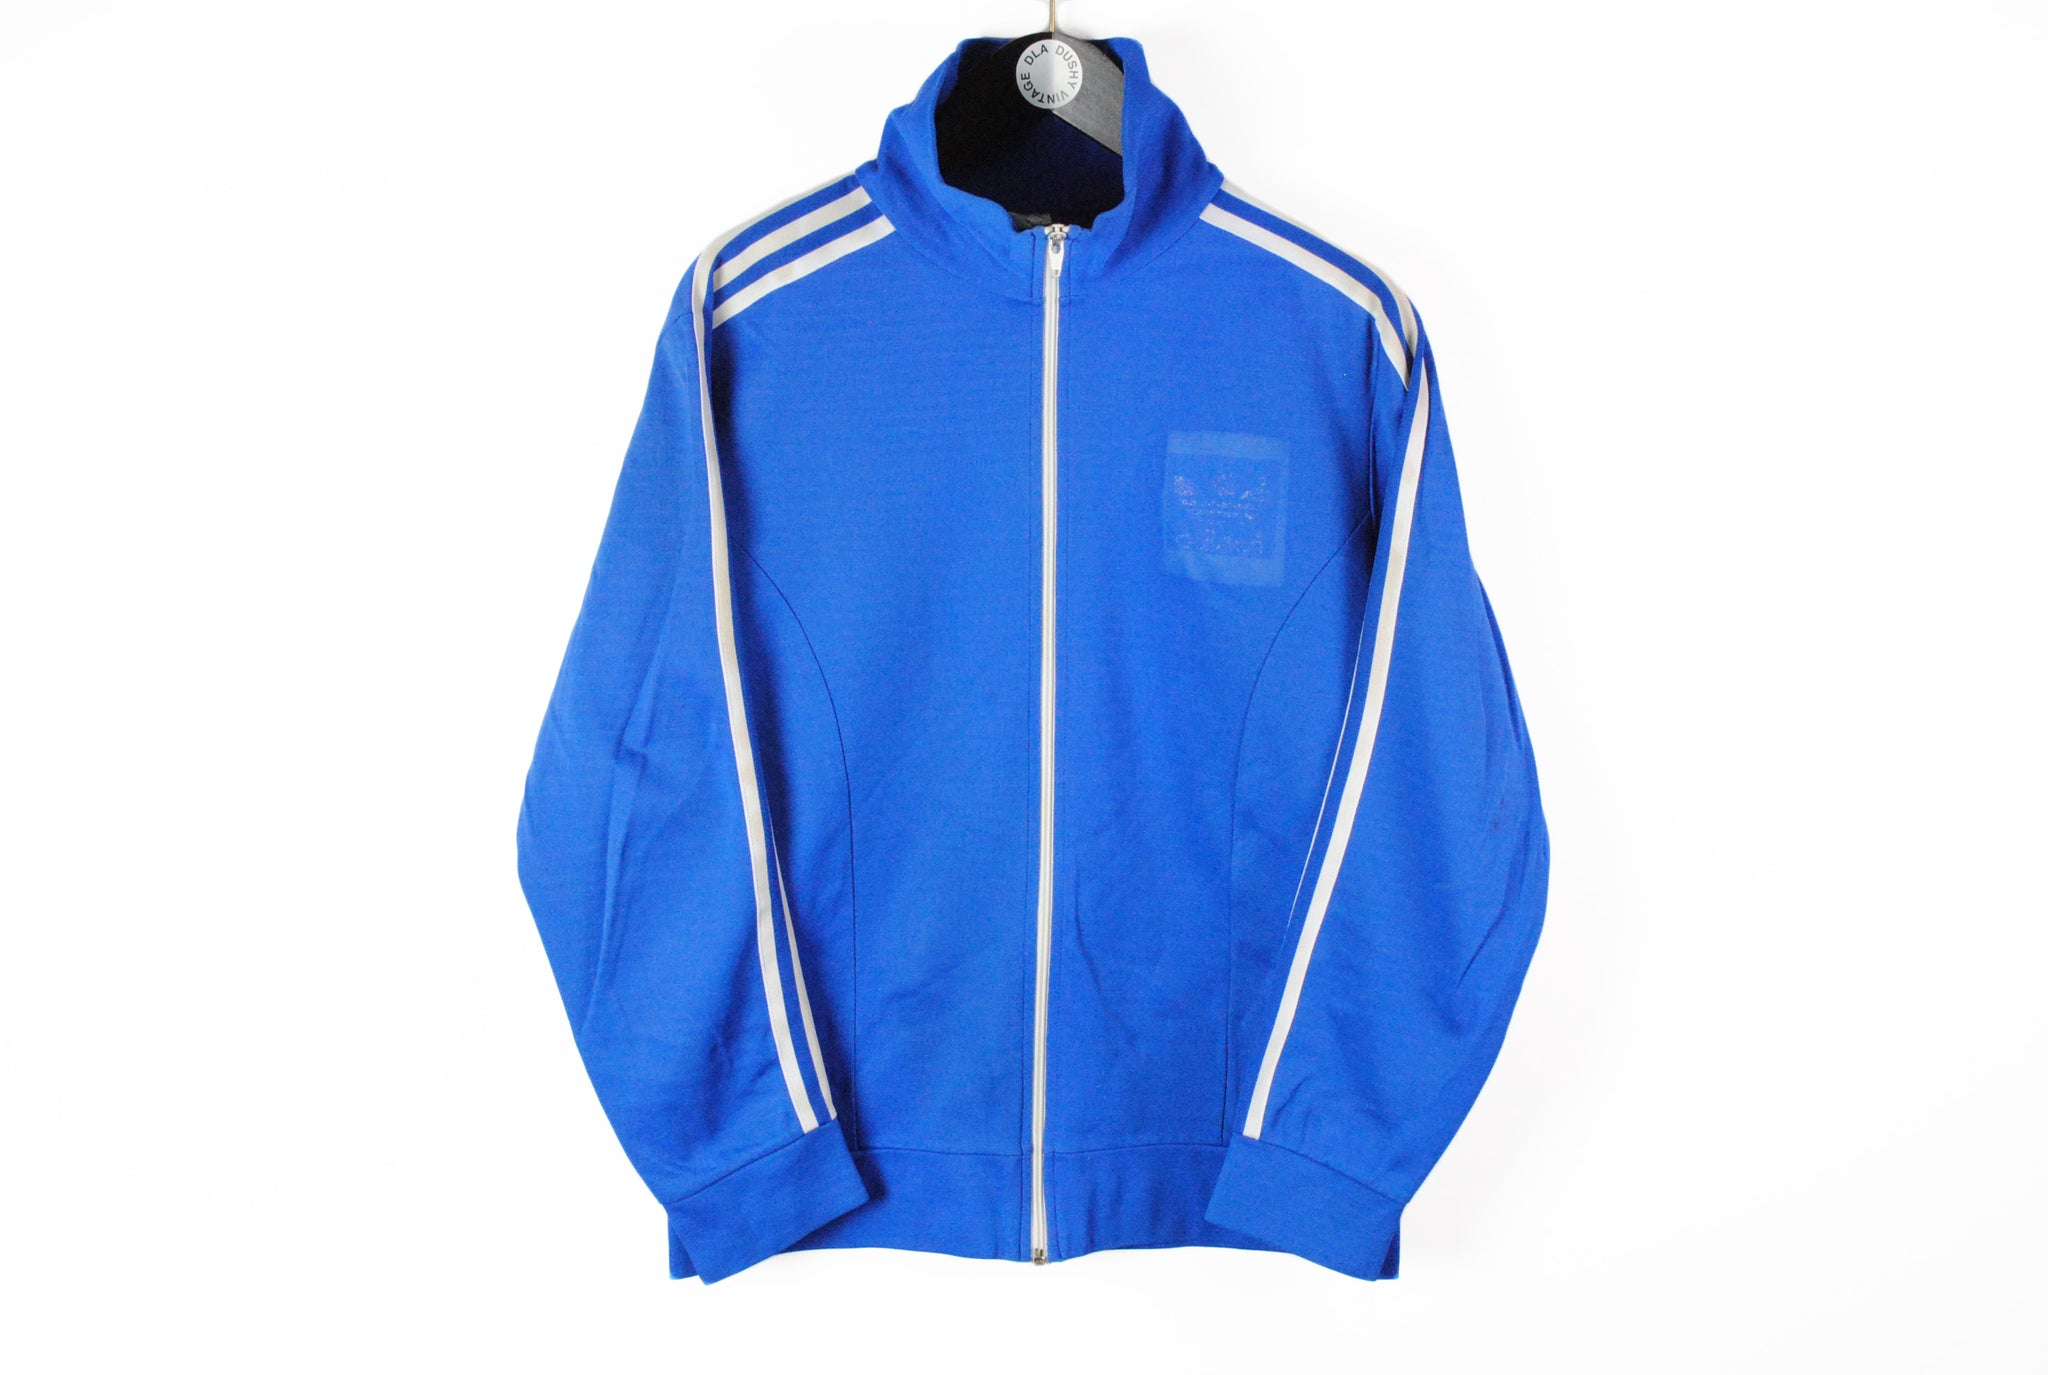 Vintage Adidas Track Jacket Small made in Hong Kong blue classic full zip cotton windbreaker